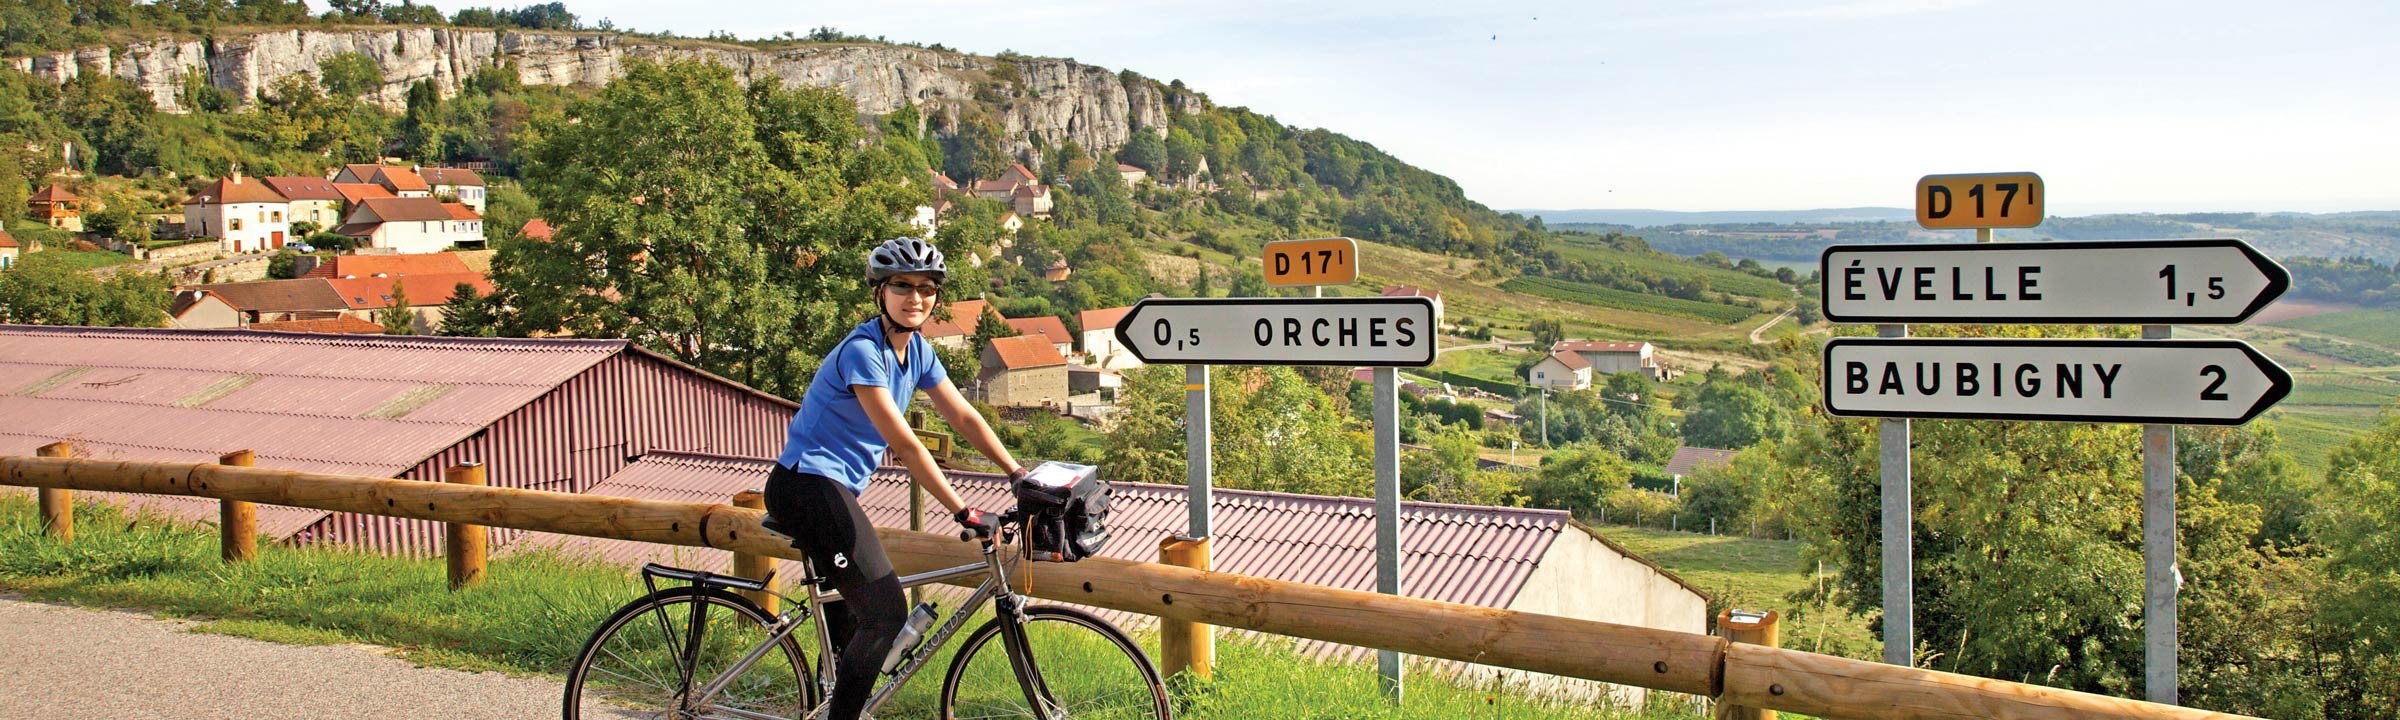 Burgundy, France bicycle tours